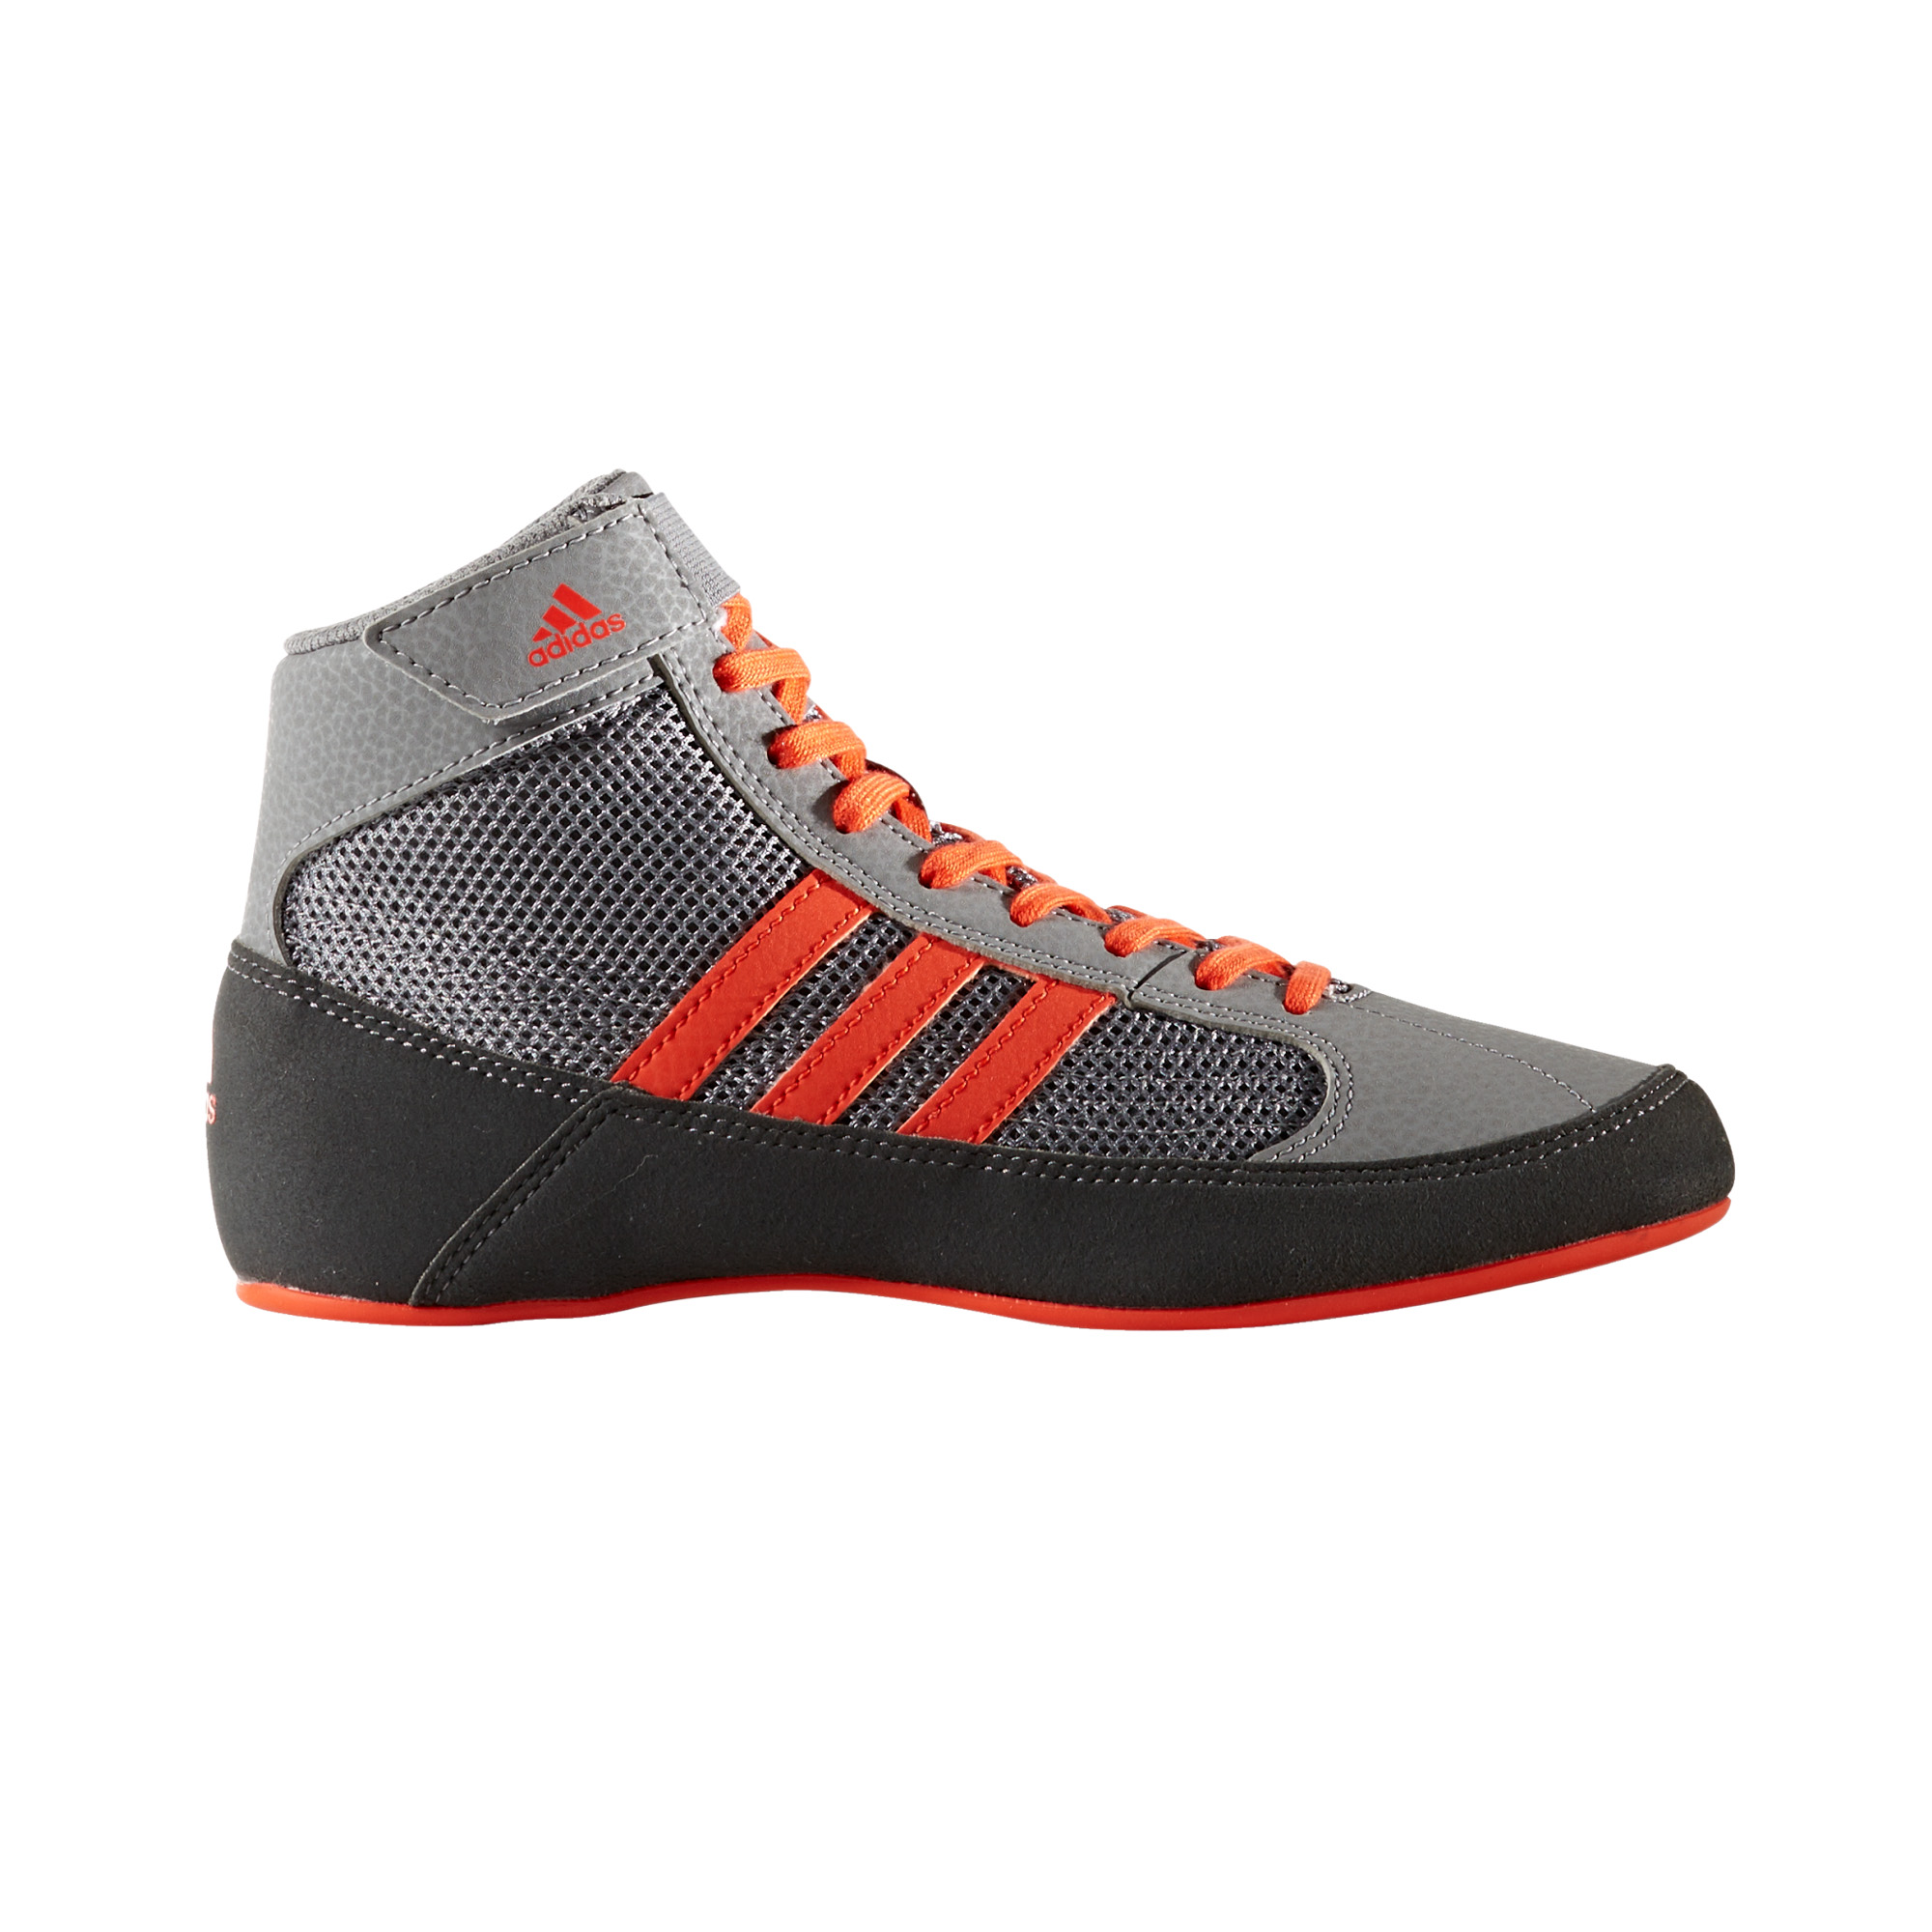 brand new 4d57c 666be Details about adidas Havoc Kids Junior Wrestling Trainer Shoe Boot Grey Red